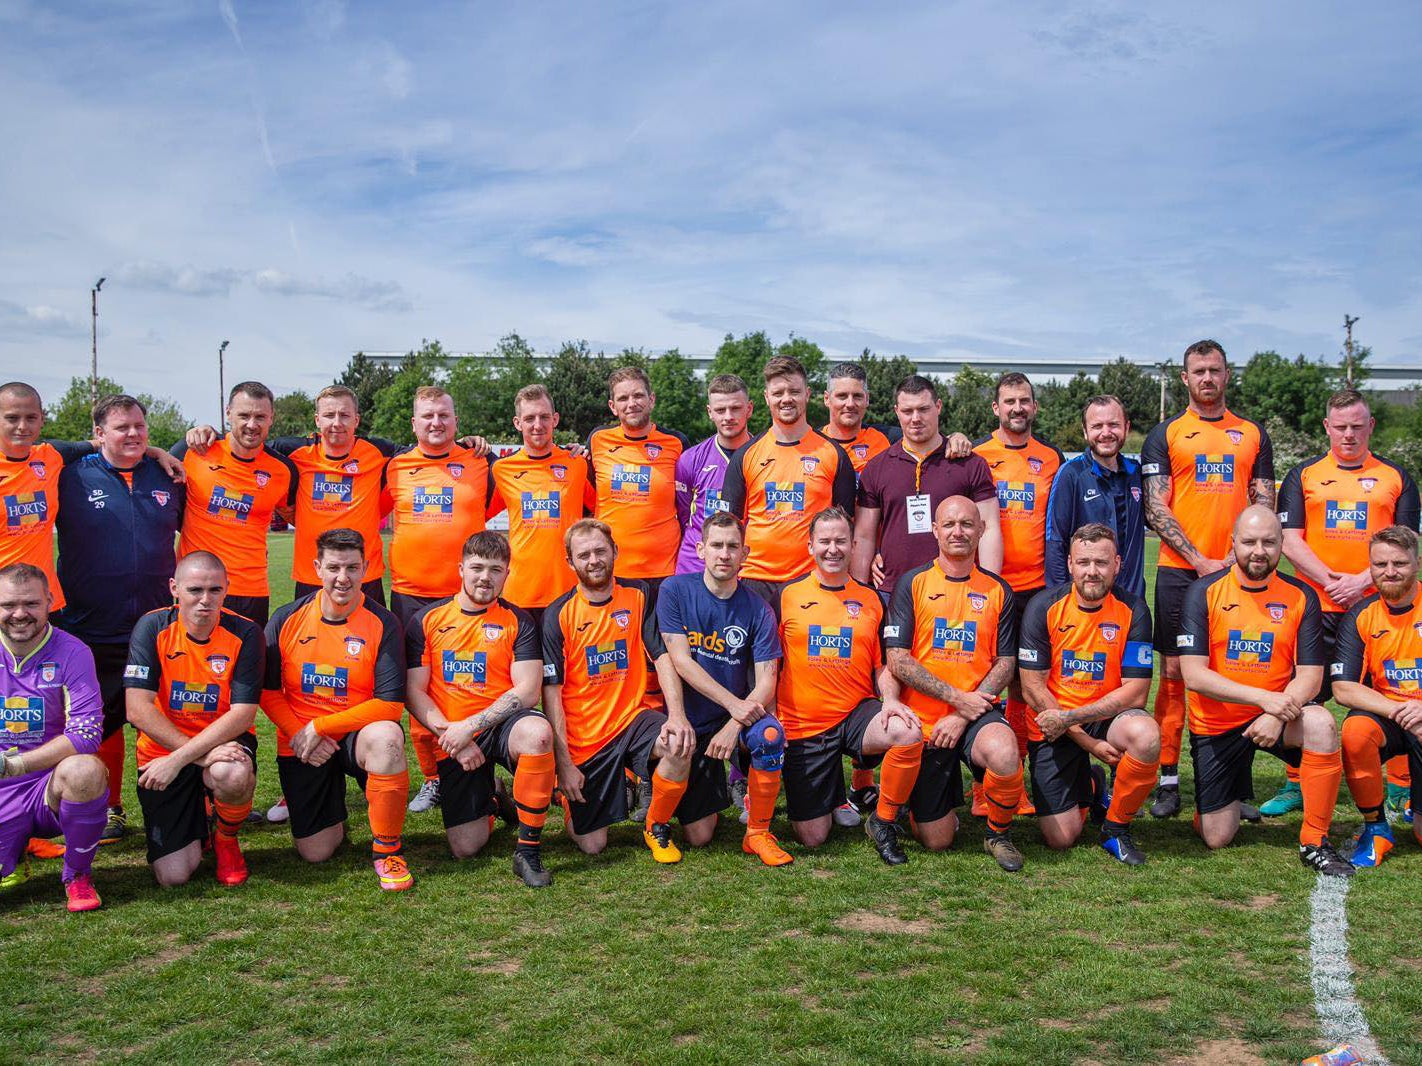 Meet the Football Team Bringing Bereaved Fathers Closer Together